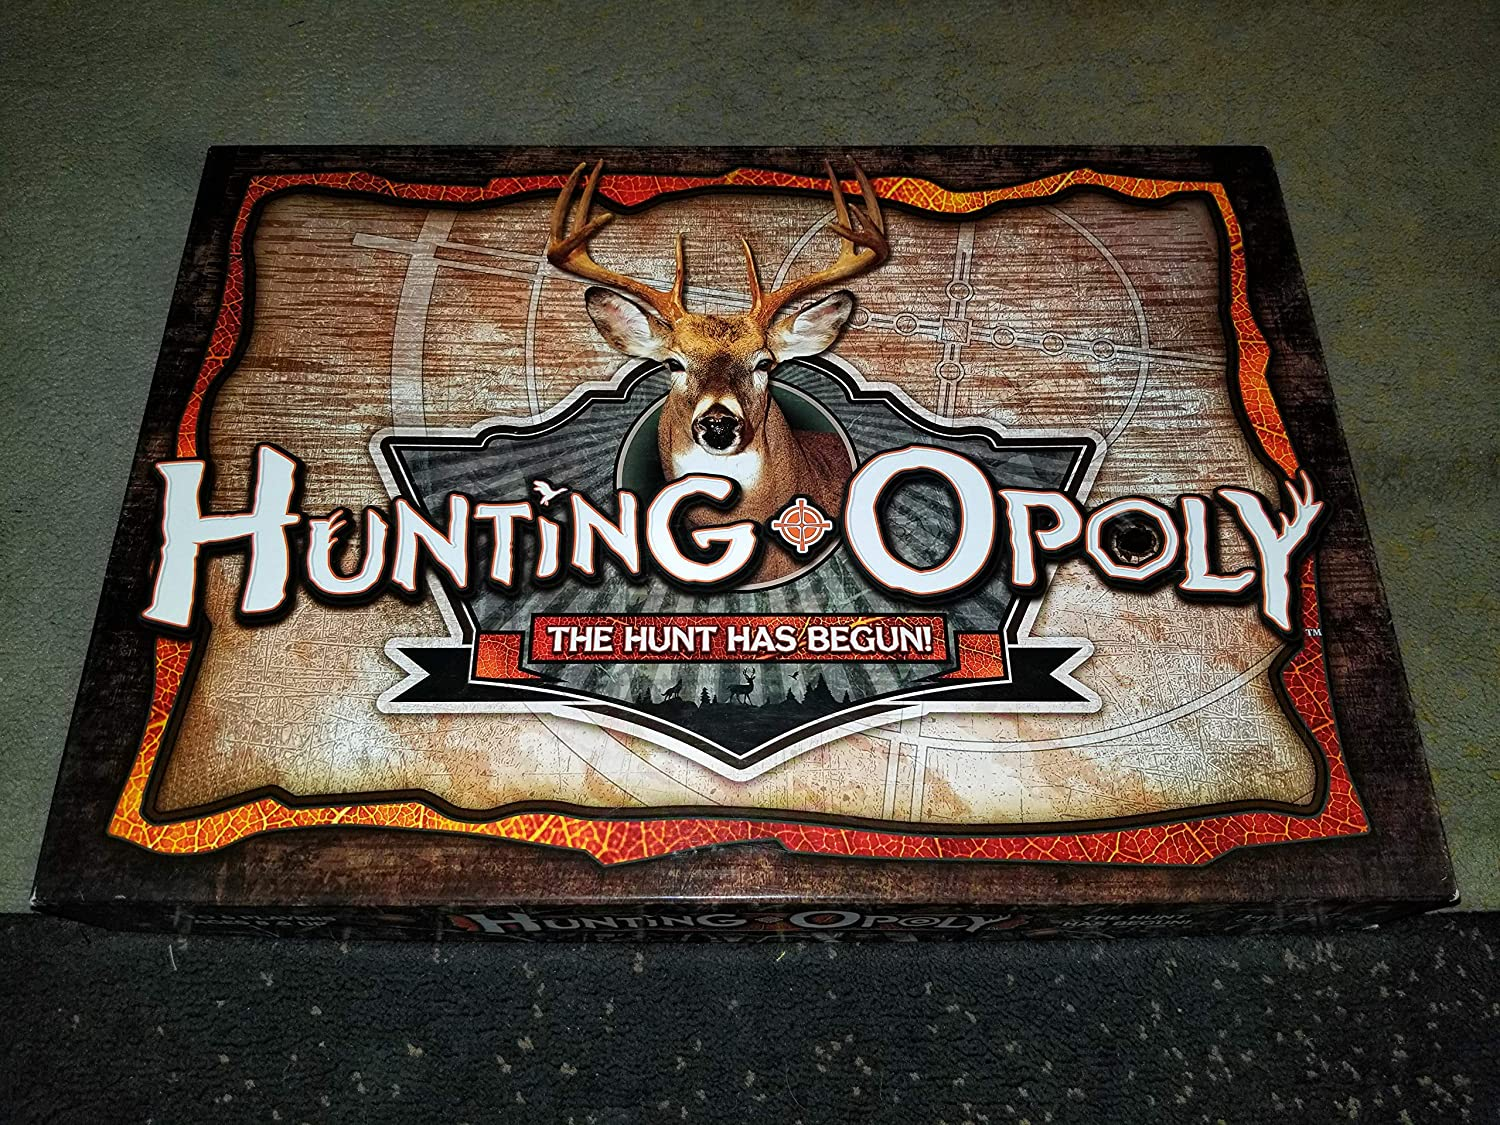 Hunting-opoly Board Game by Late for the Sky